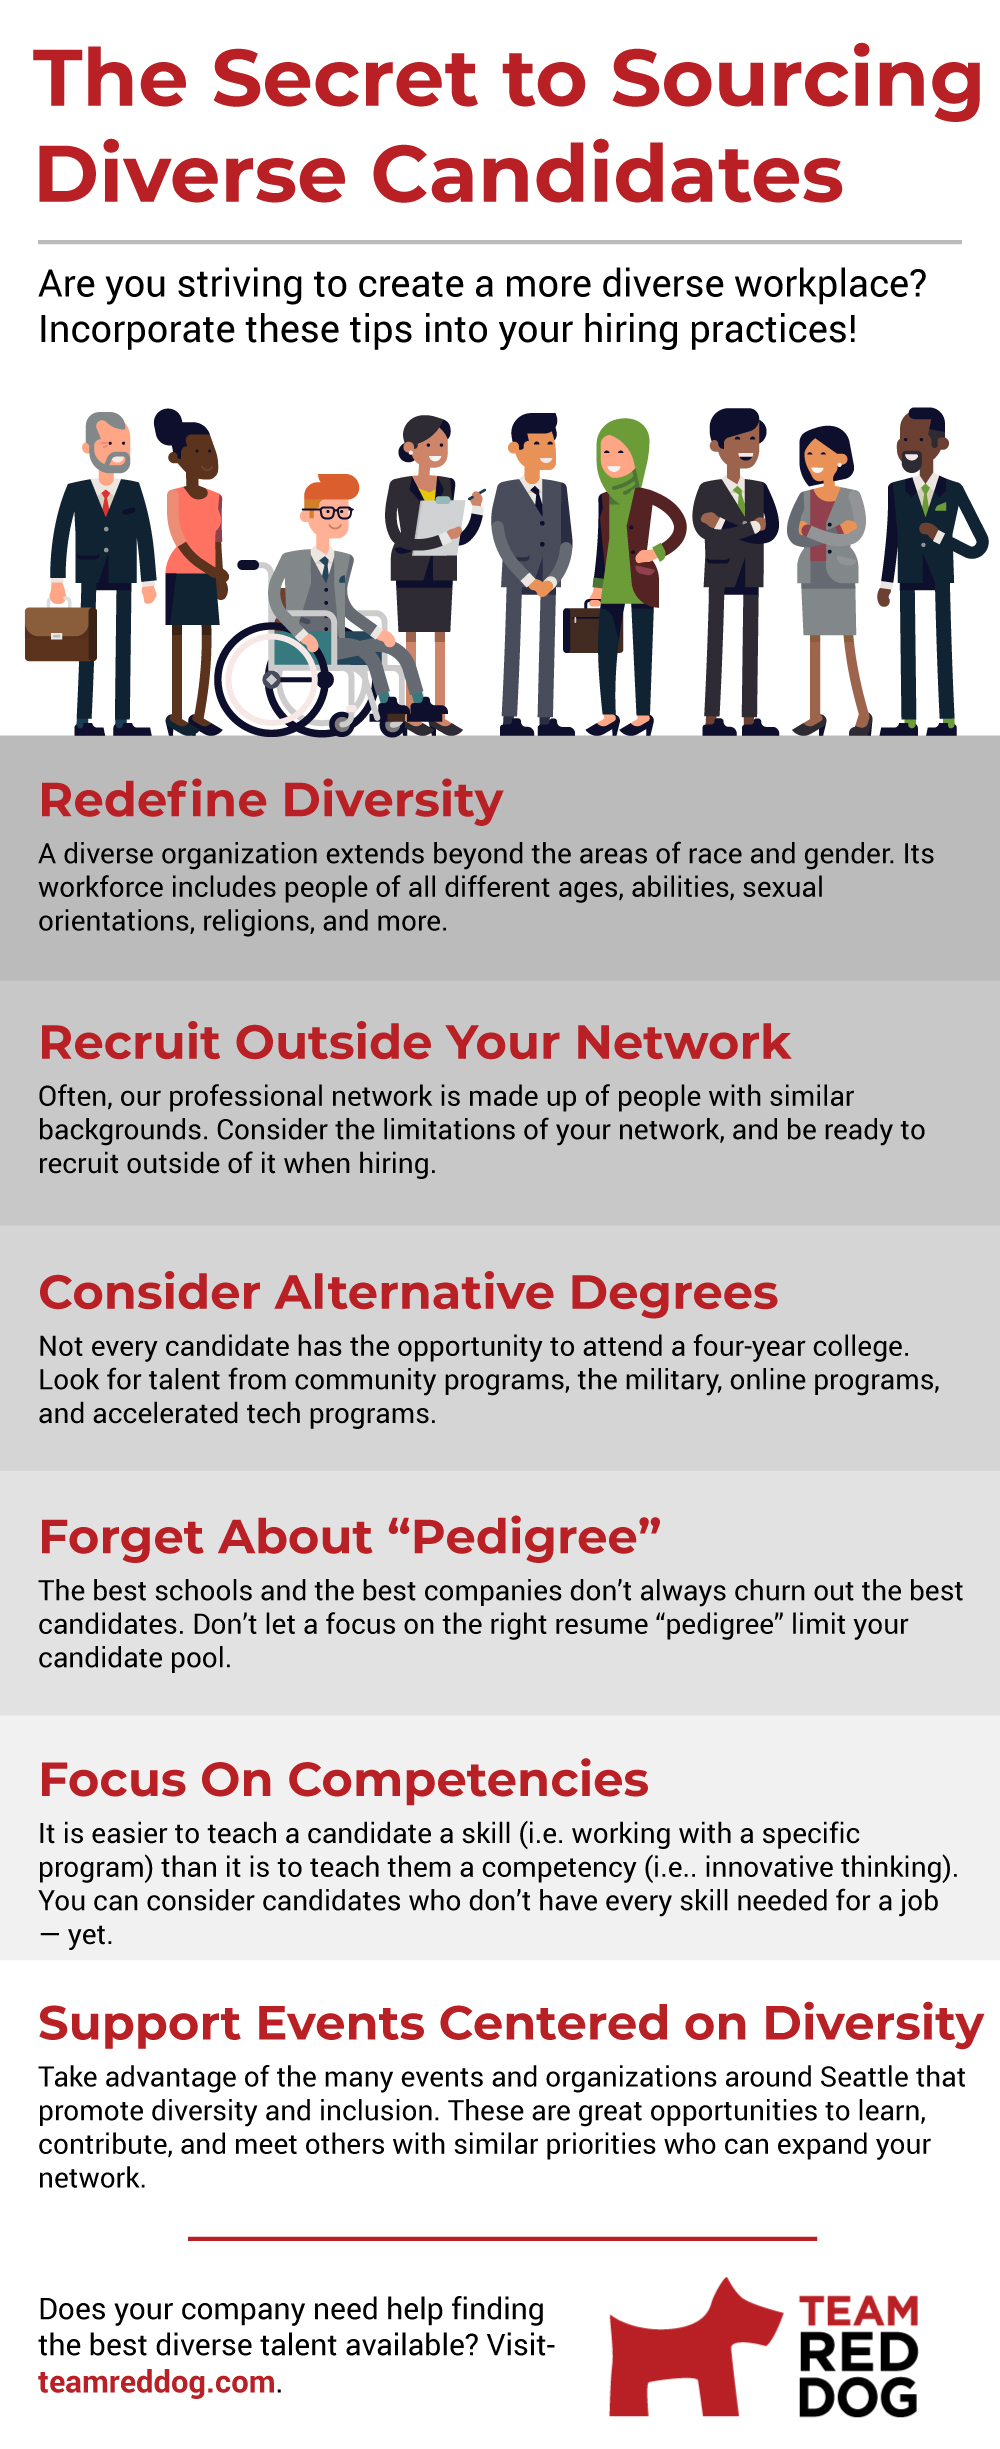 Infographic on strategies to source diverse candidates